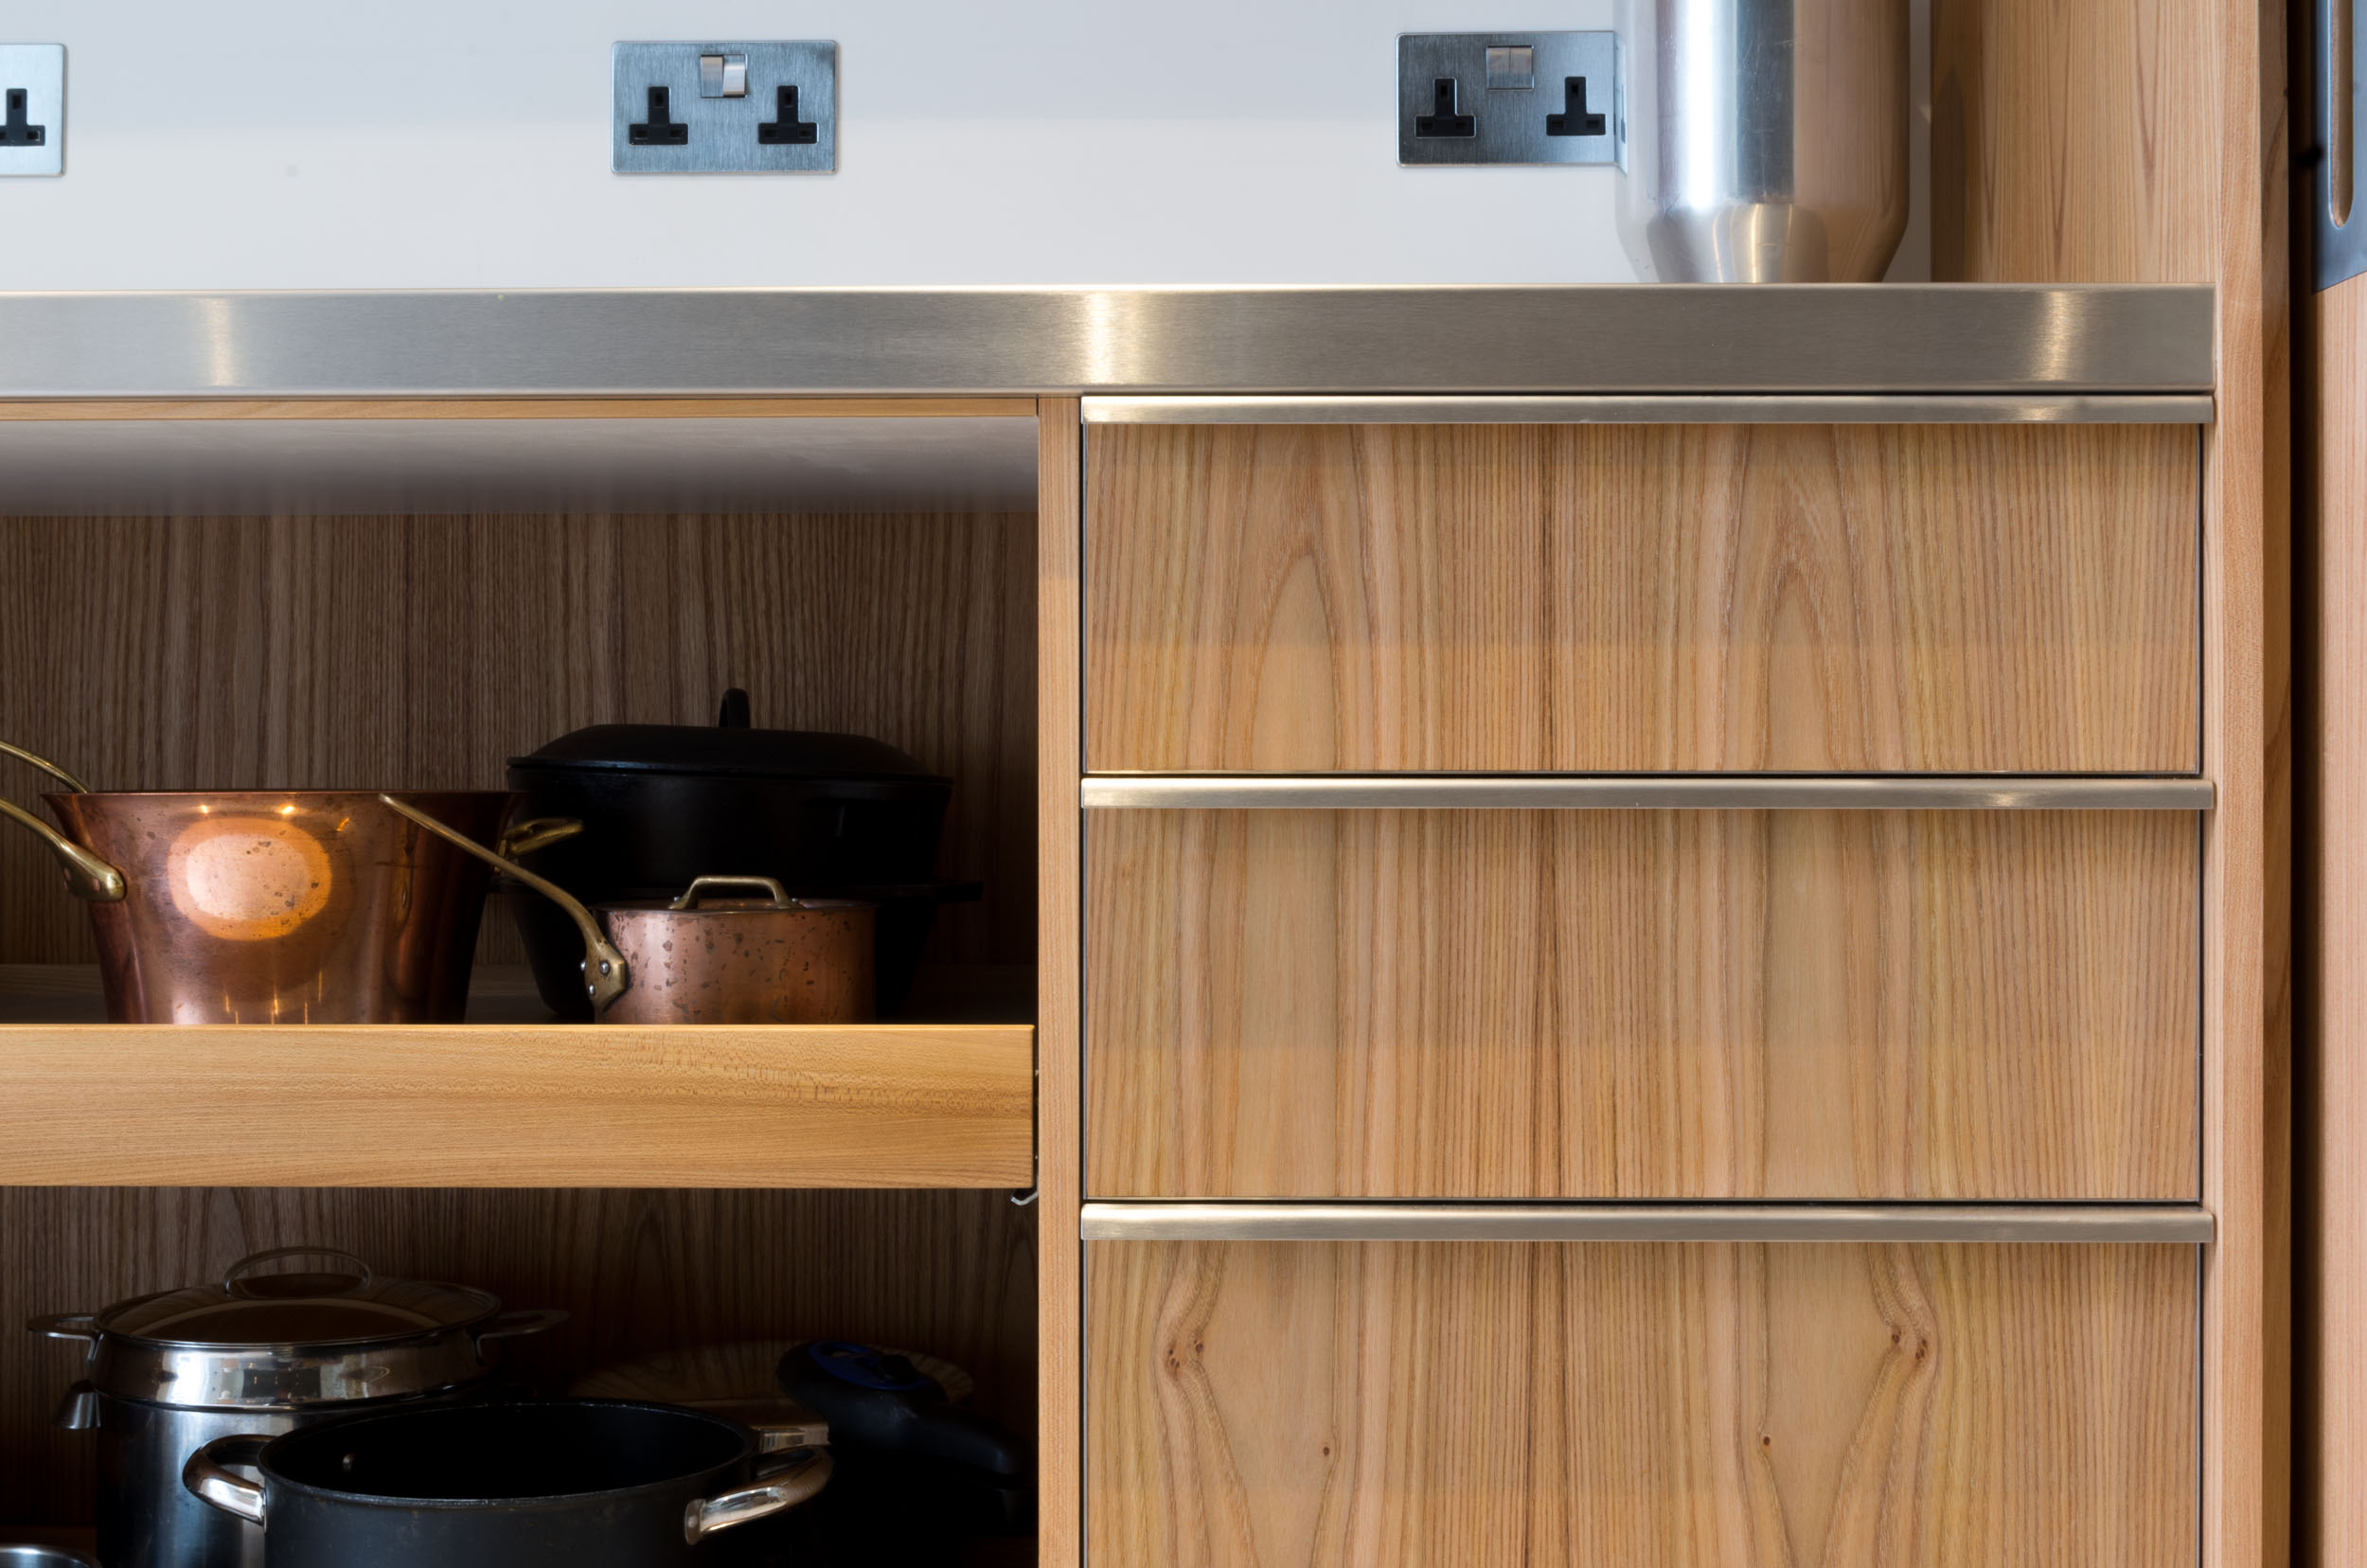 Copy of Powell Picano London - Clifton Gardens bespoke kitchen drawers and pull out shelves